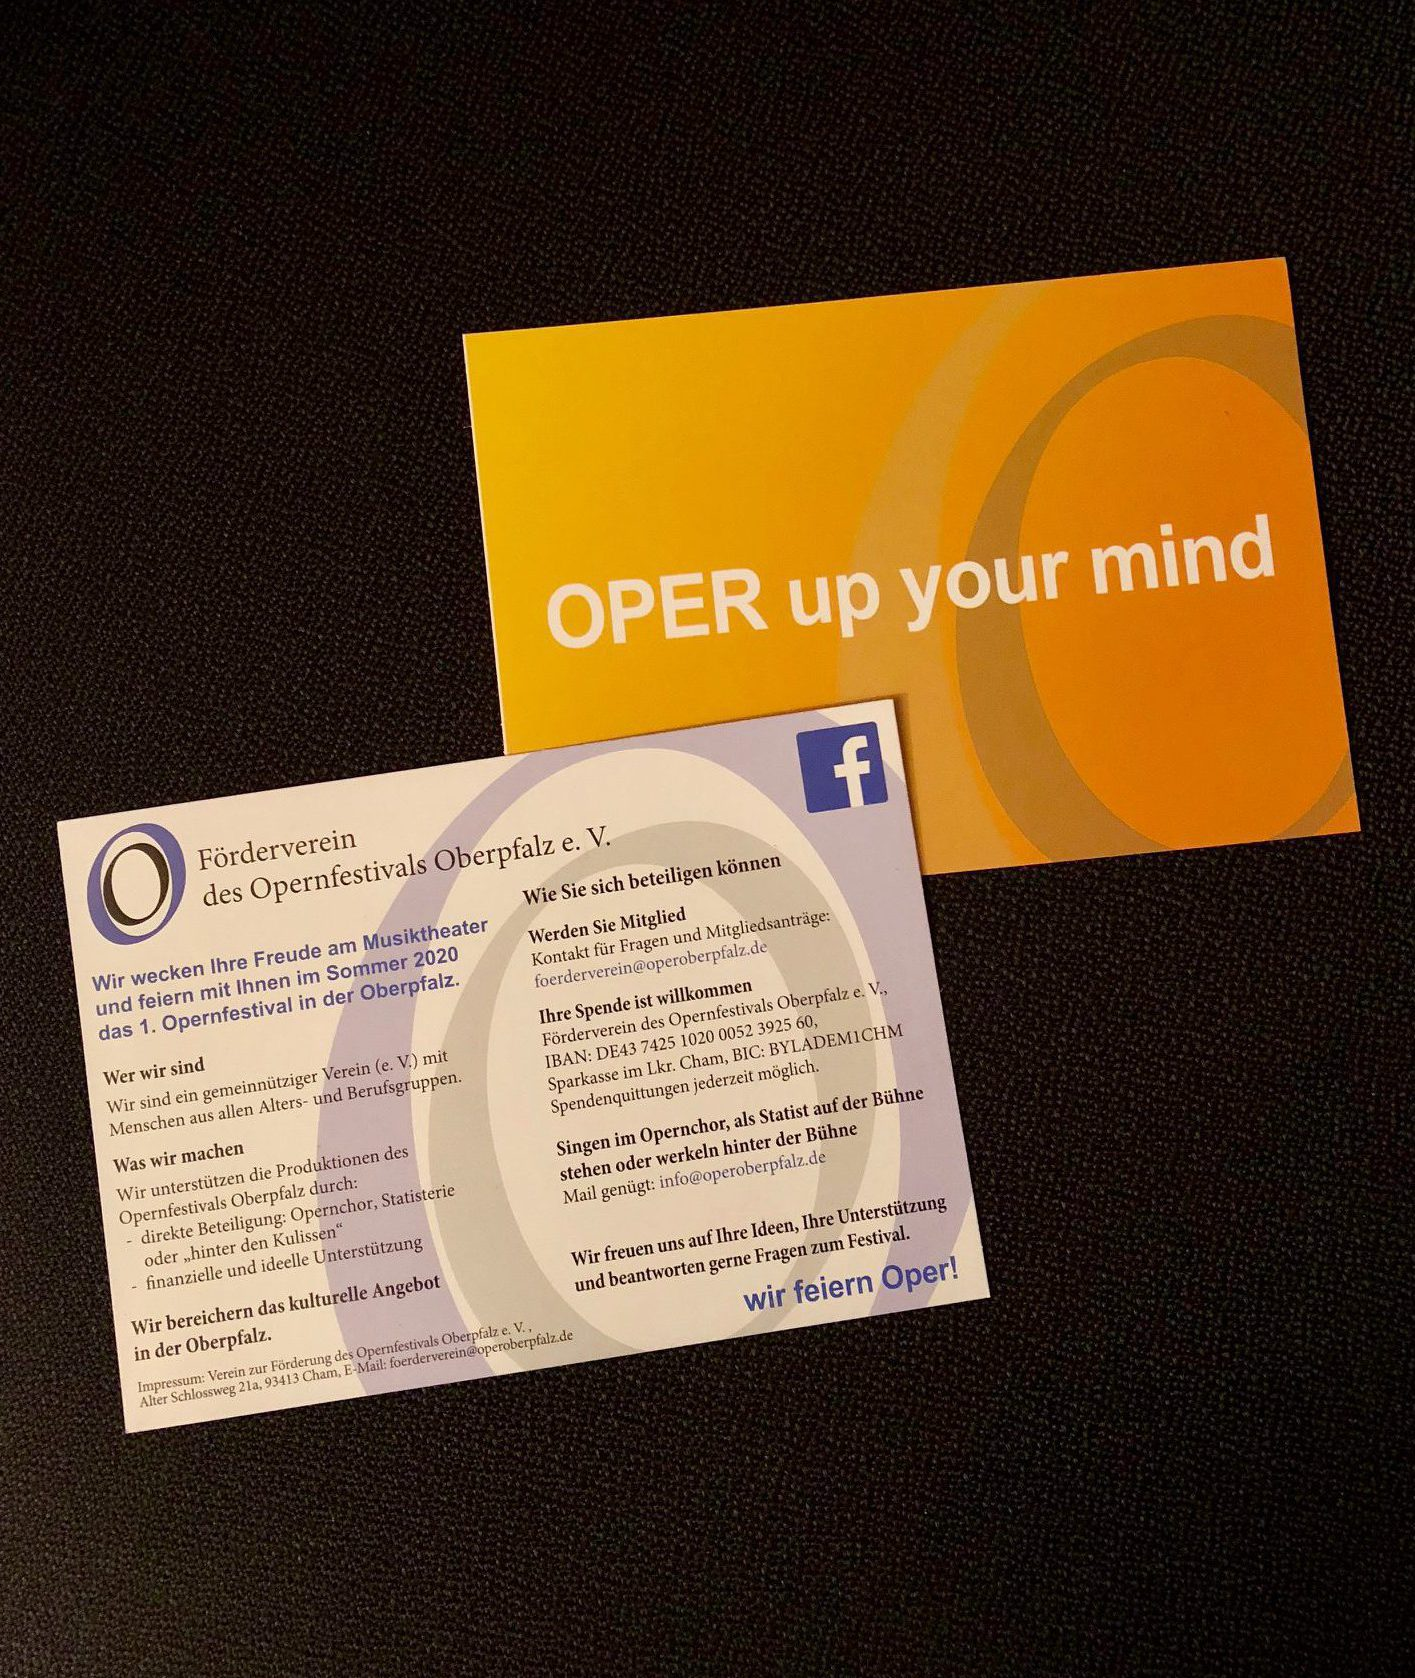 OPER up your mind - Opernfestival Oberpfalz